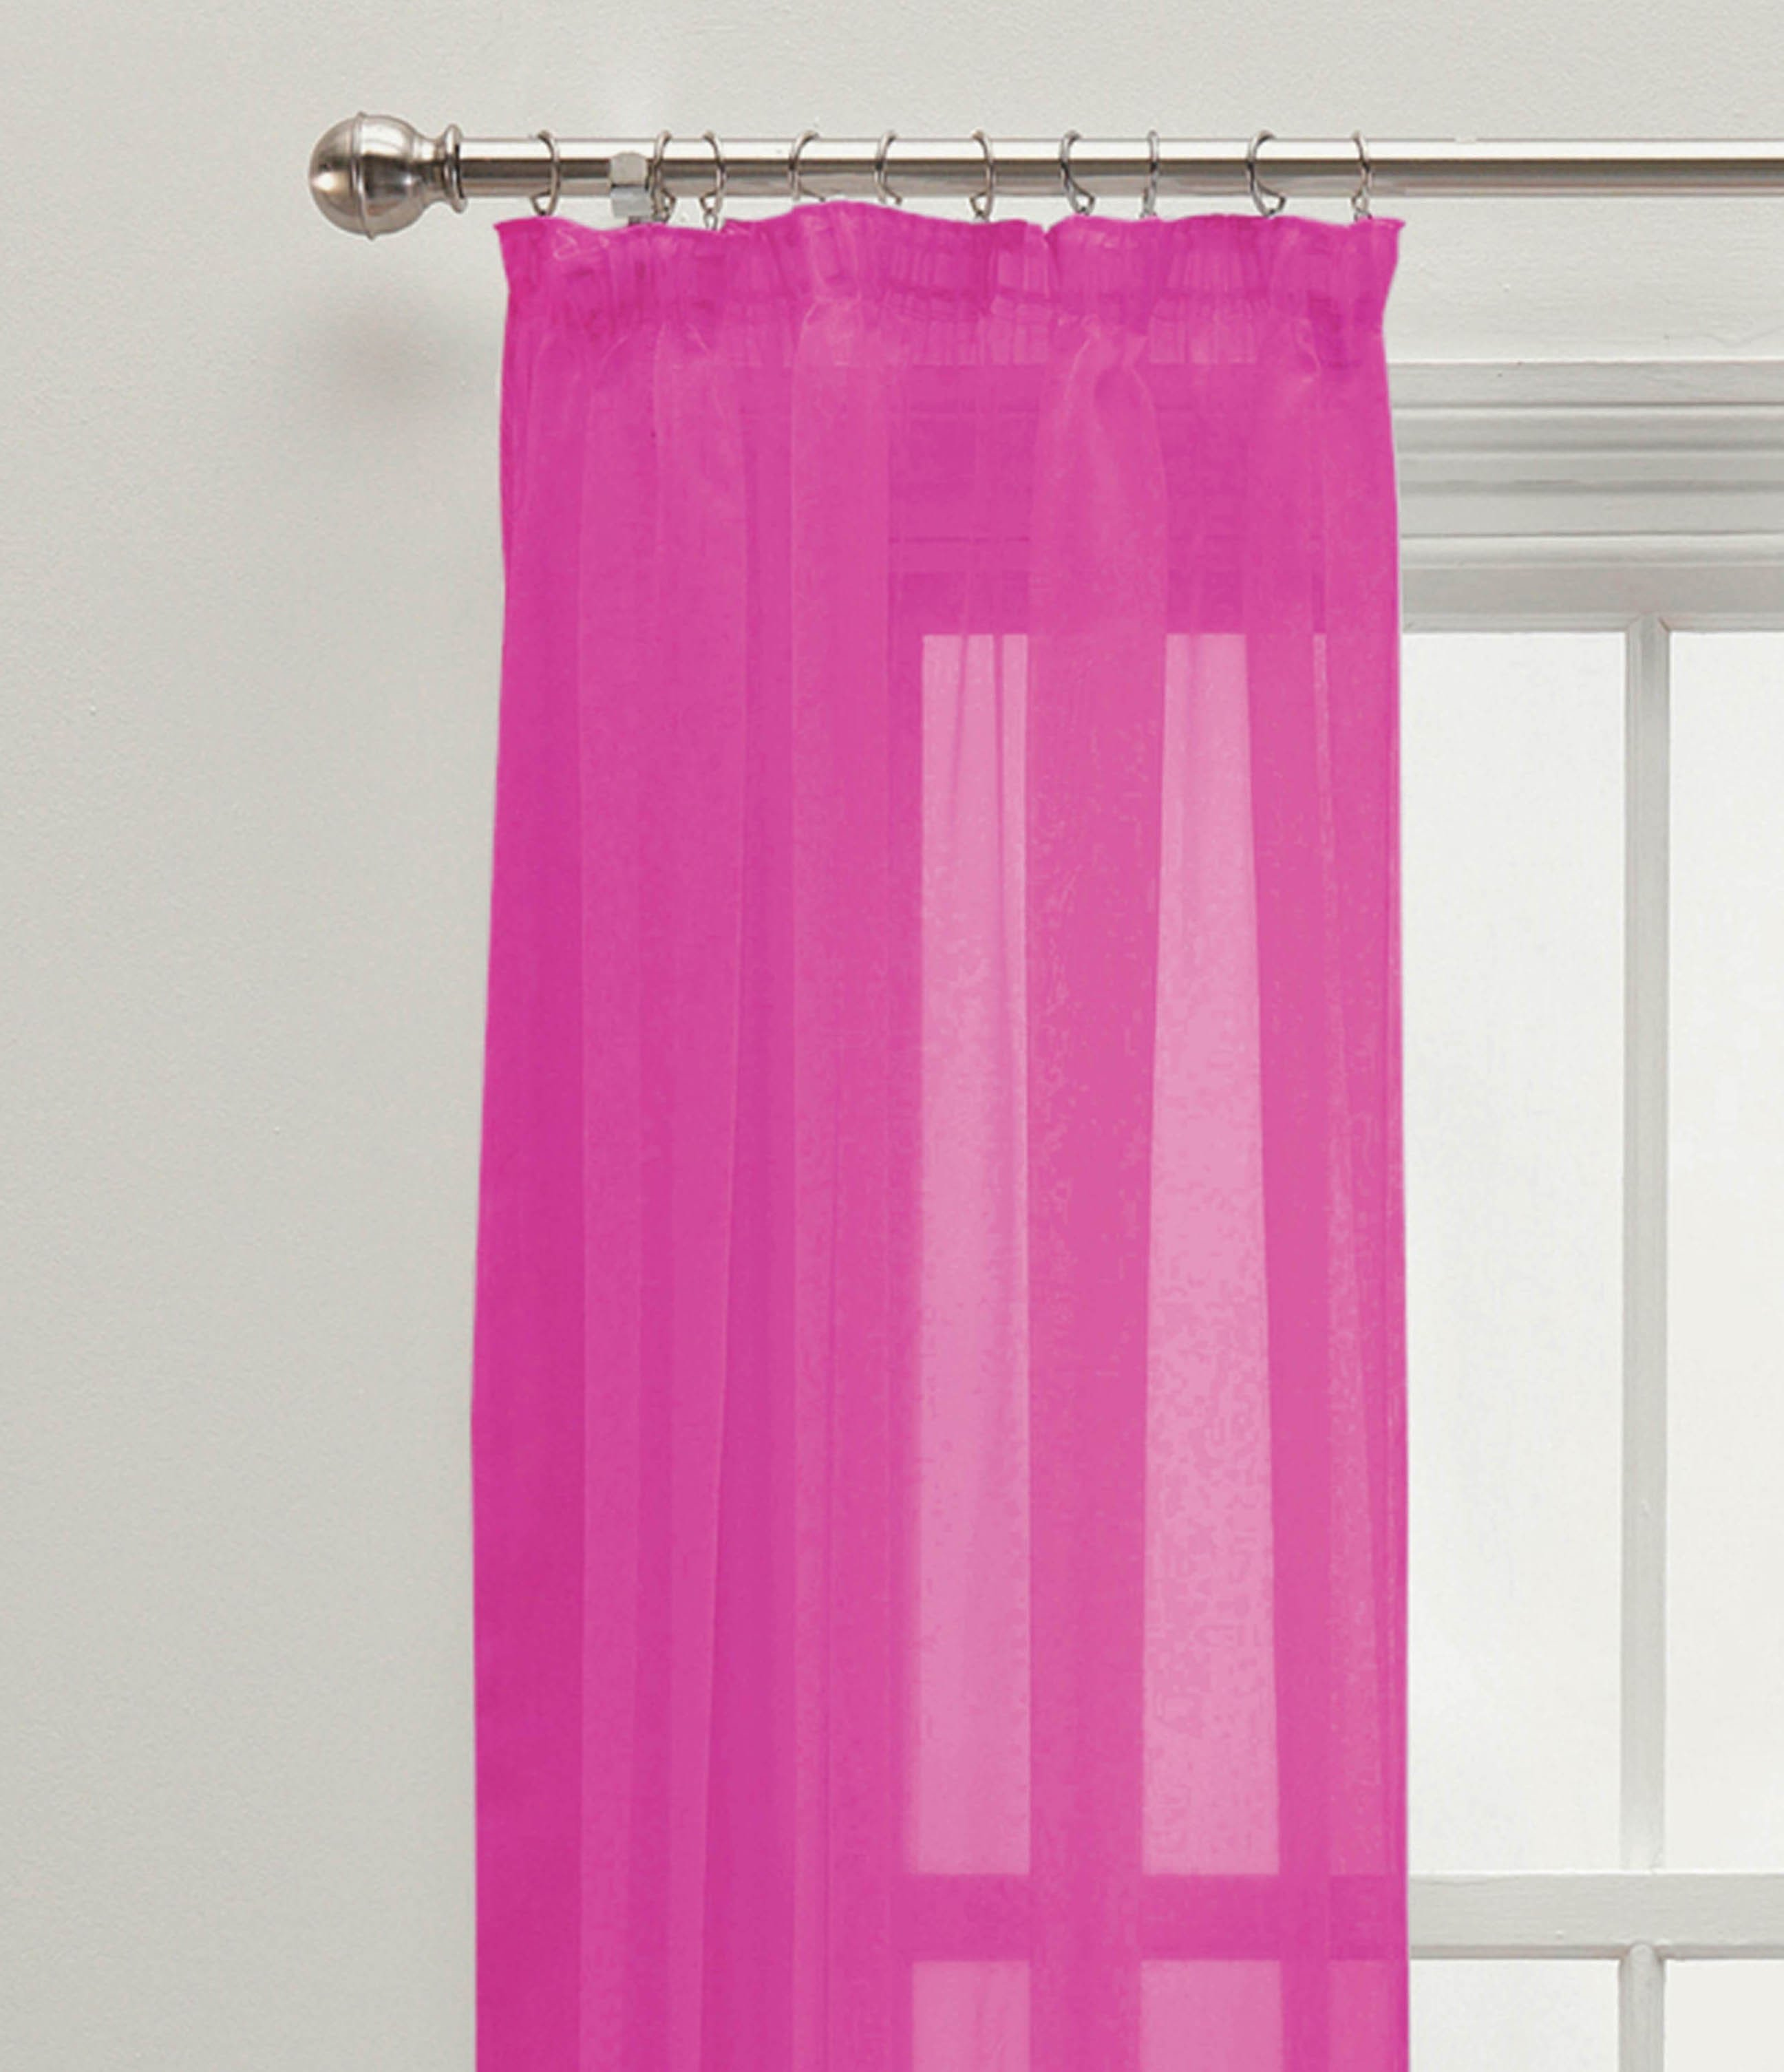 blinds curtains and accessories page 59 argos price. Black Bedroom Furniture Sets. Home Design Ideas